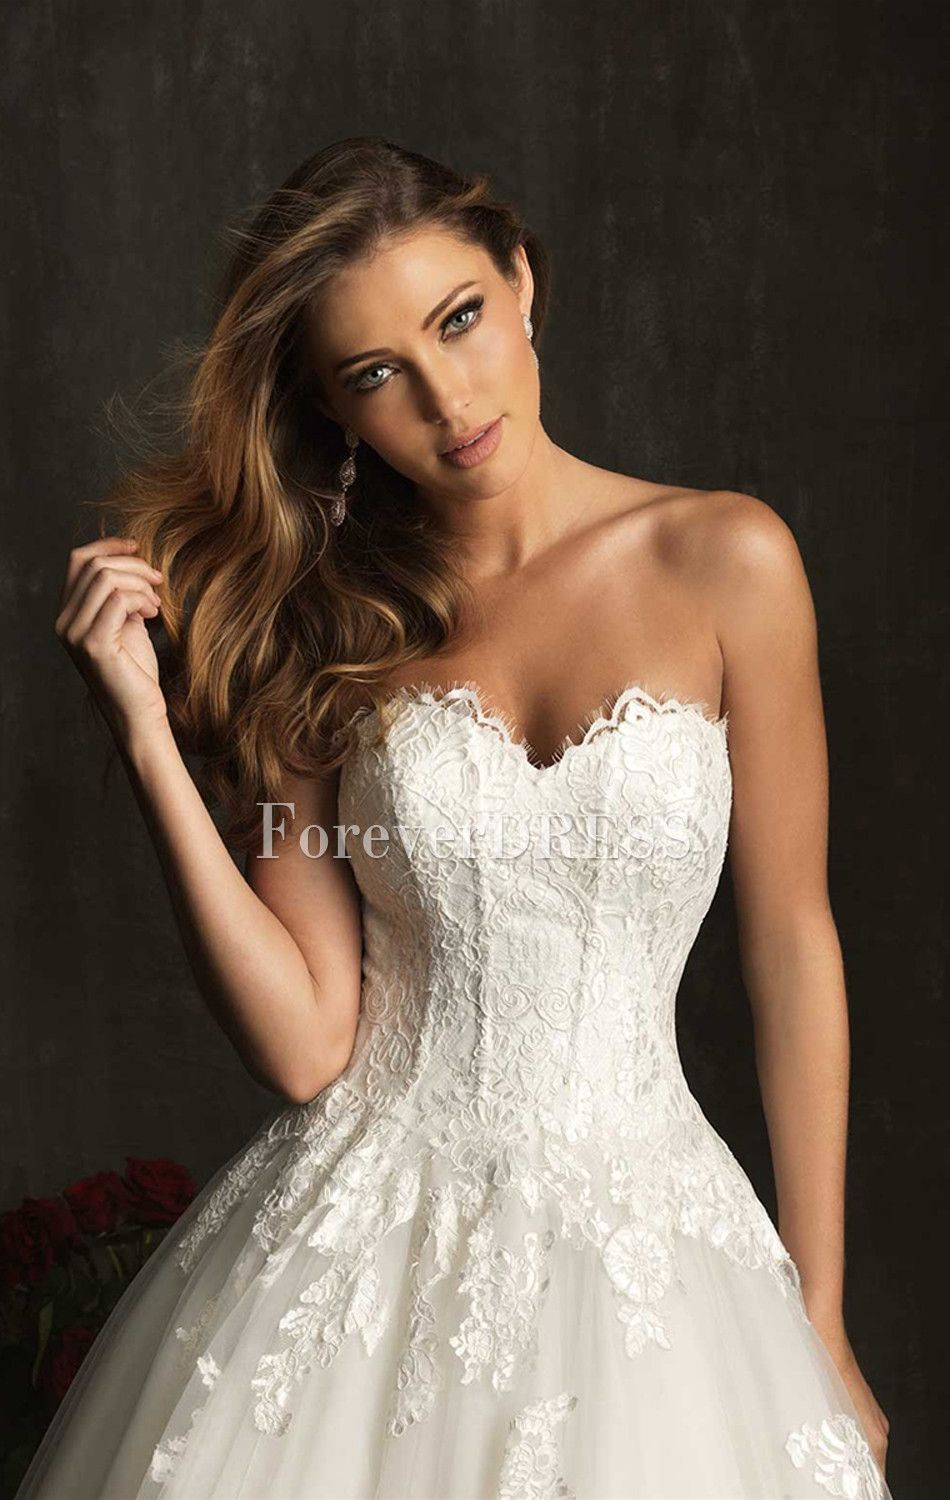 Lace Wedding Dress With Boning Yahoo Image Search Results